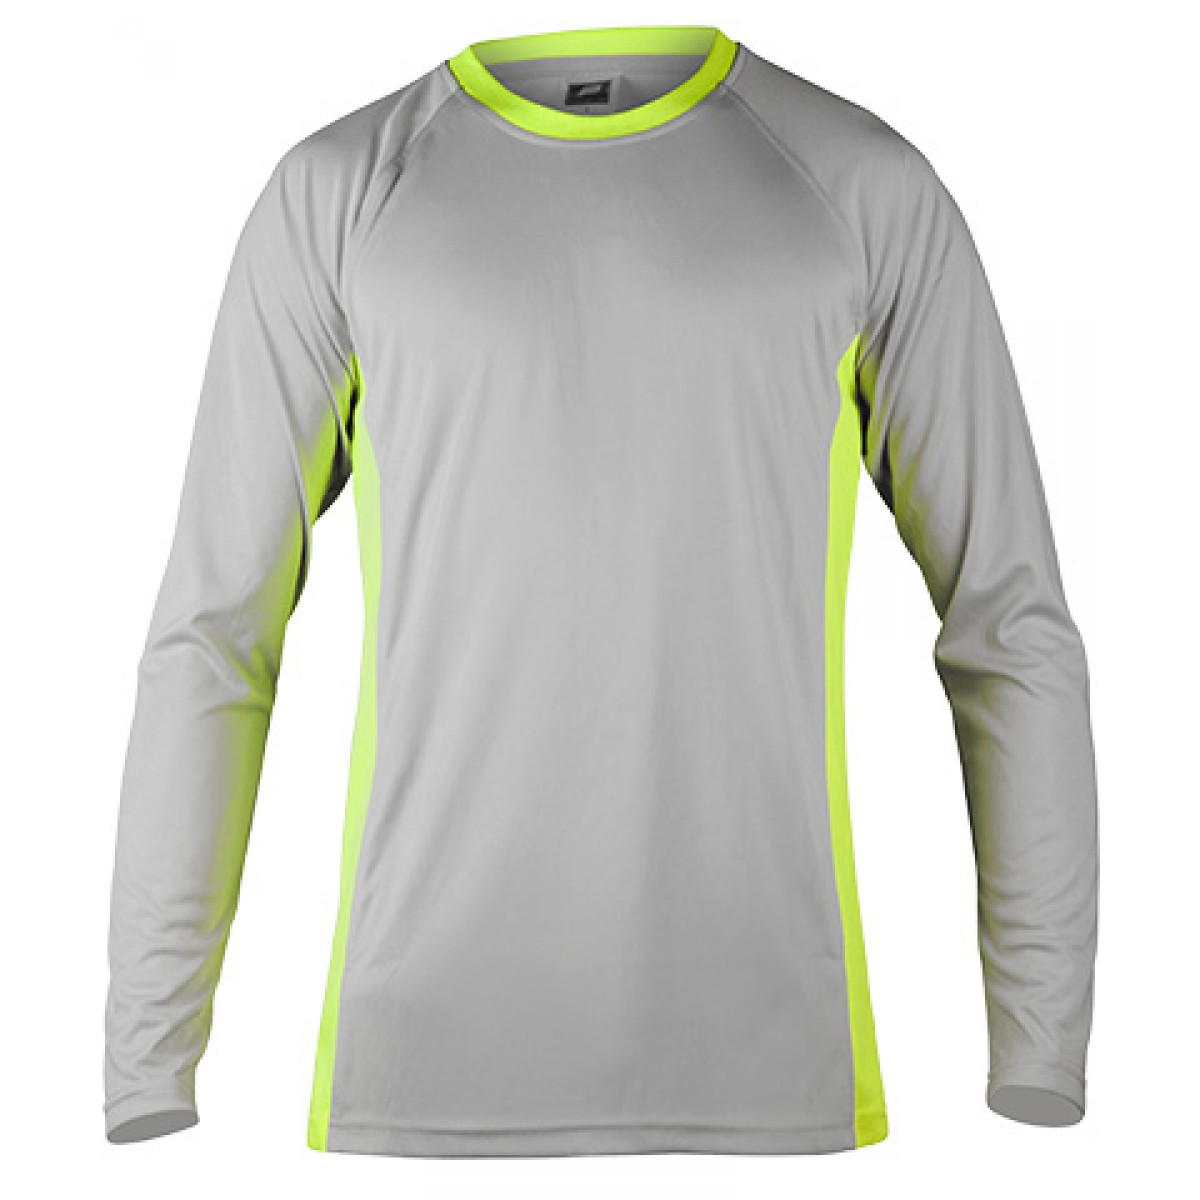 Long Sleeves Performance With Side Insert-Gray/Green-YM